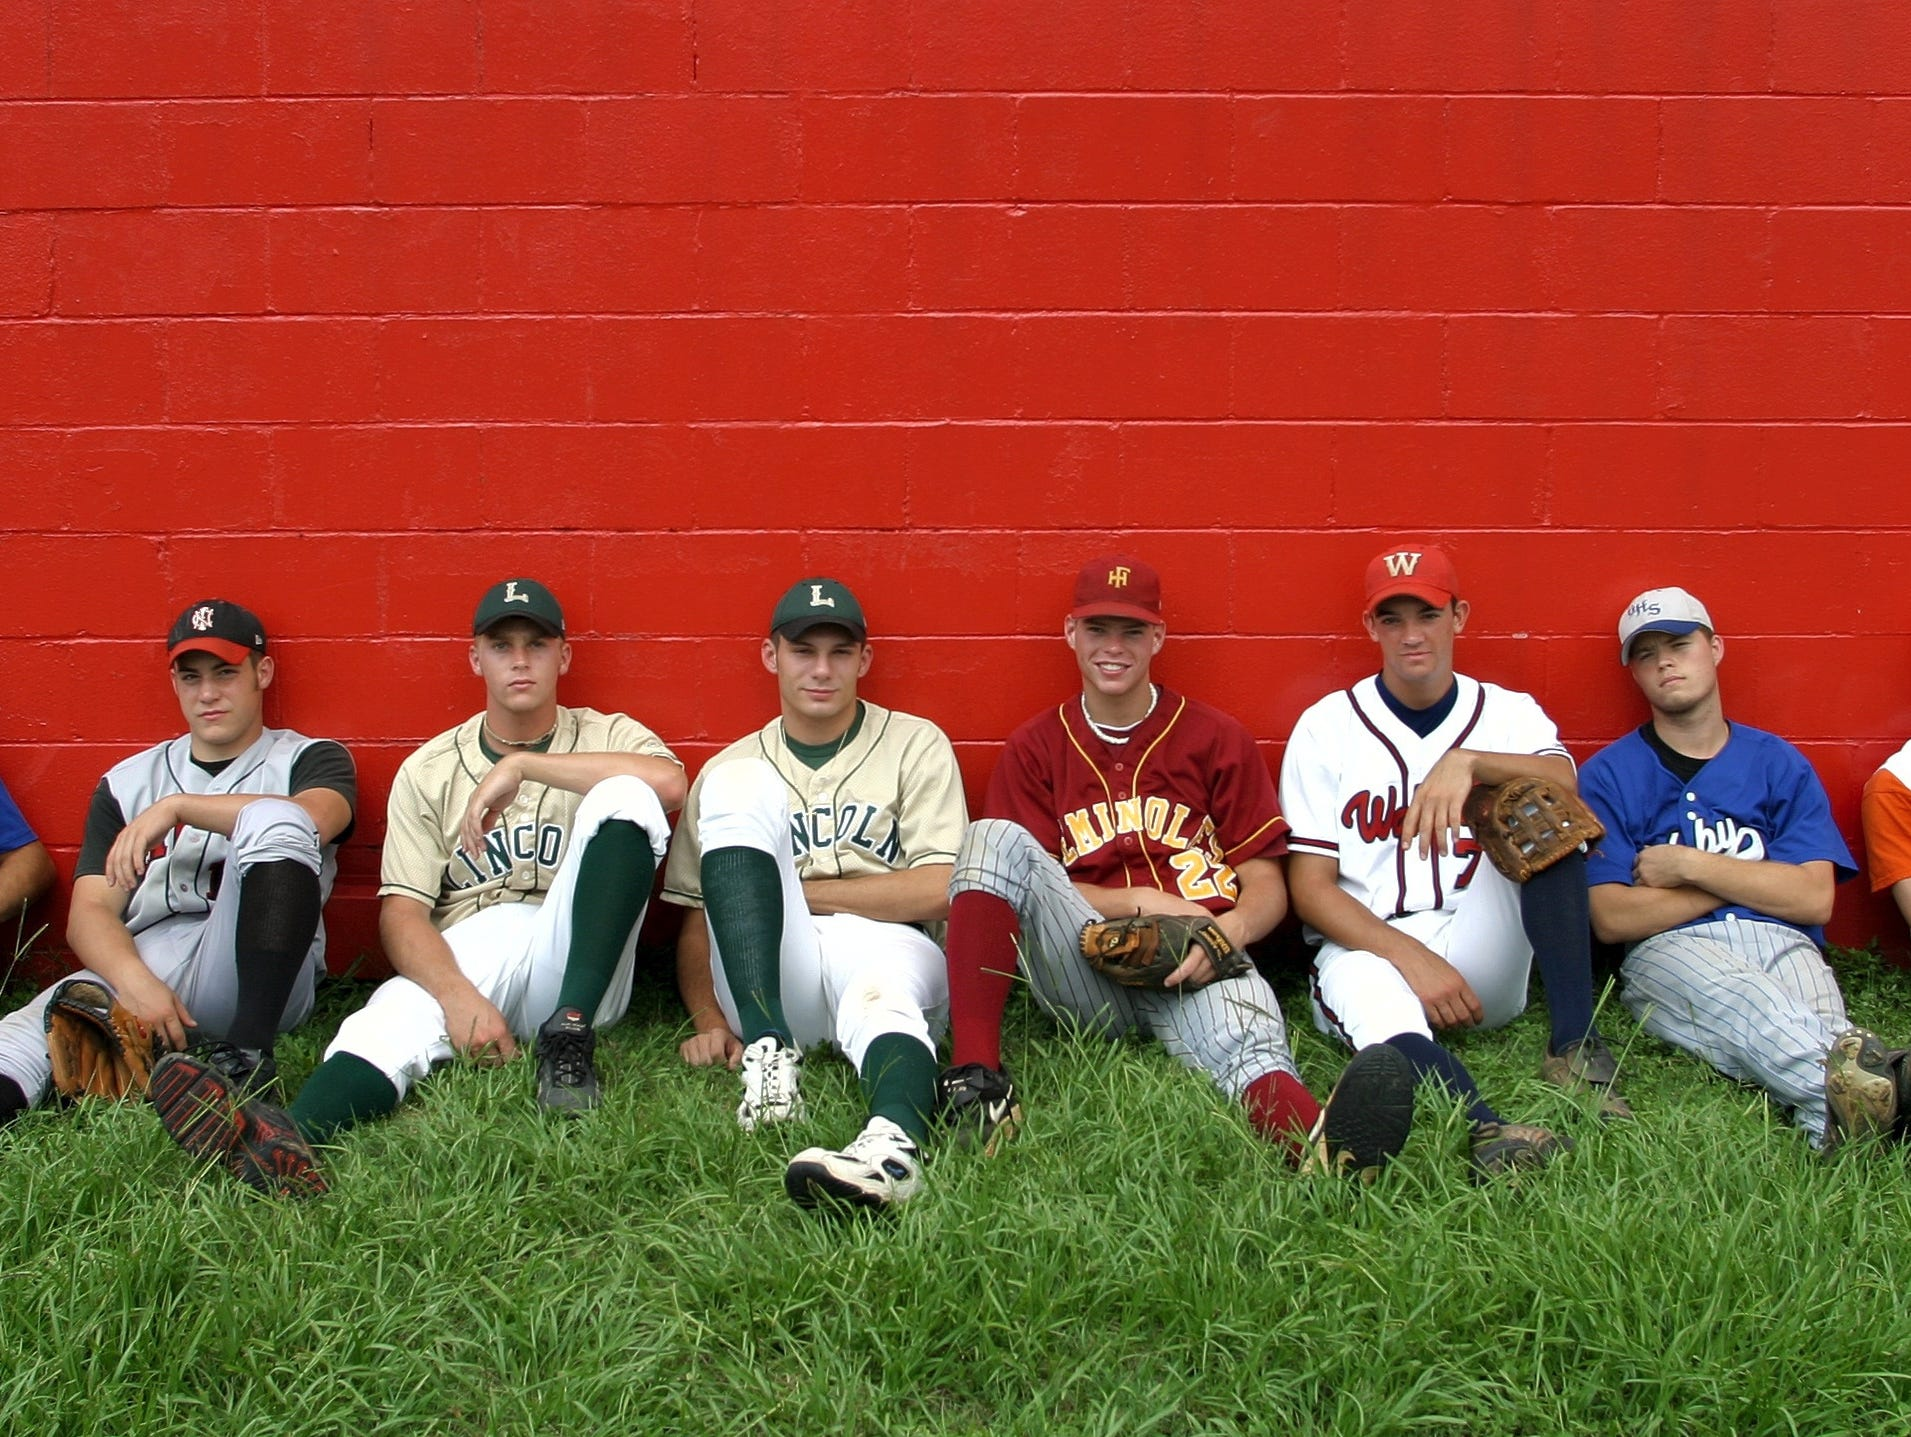 The 2003 All-Big Bend baseball team featured former FSU pitchers Michael Hyde (Lincoln) and Bryan Henry (Florida High). Both led TBC to a national title in 2003, the club's first.